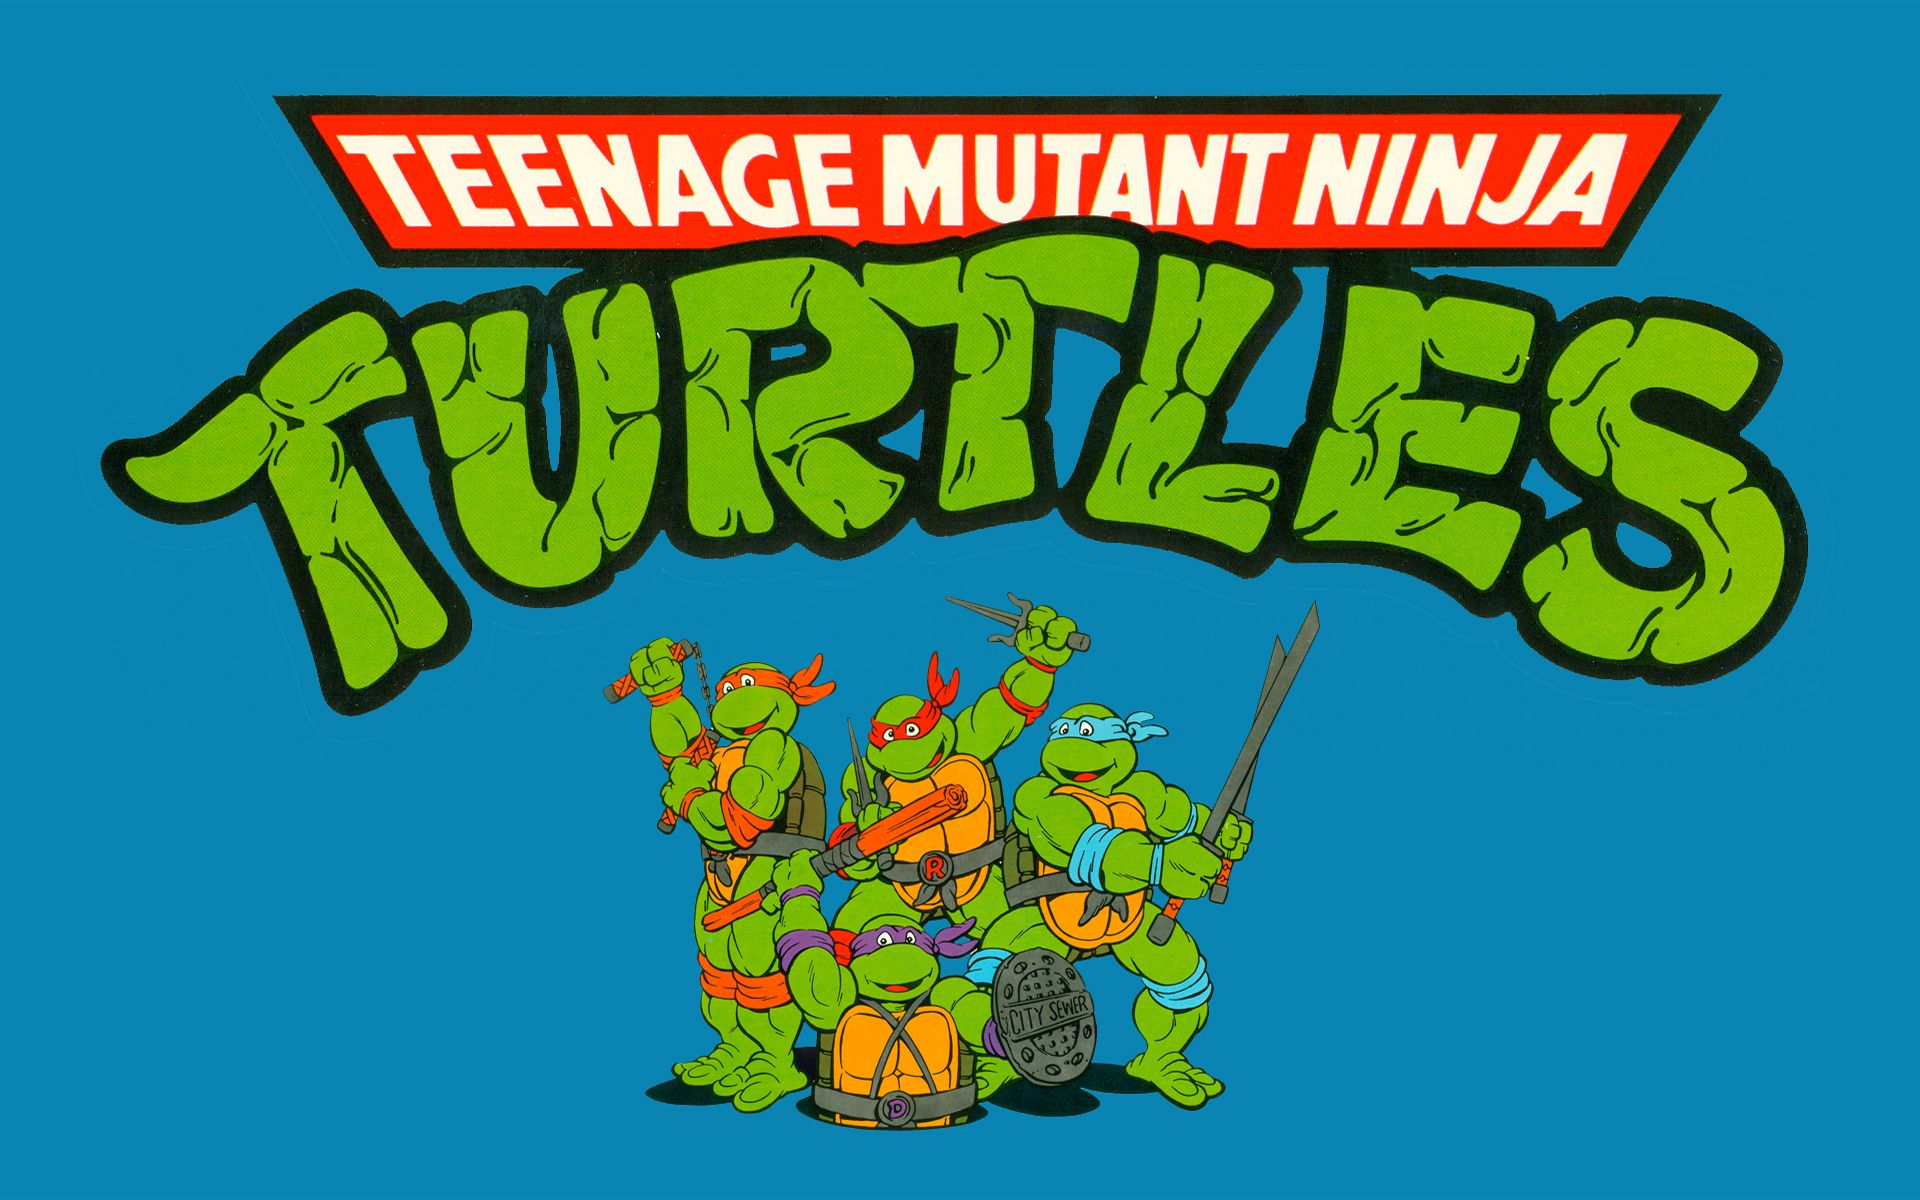 T-shirt Originale Ninja Turtles Got Game Tartarughe Ninja 4 Colori Nickelodeon Other